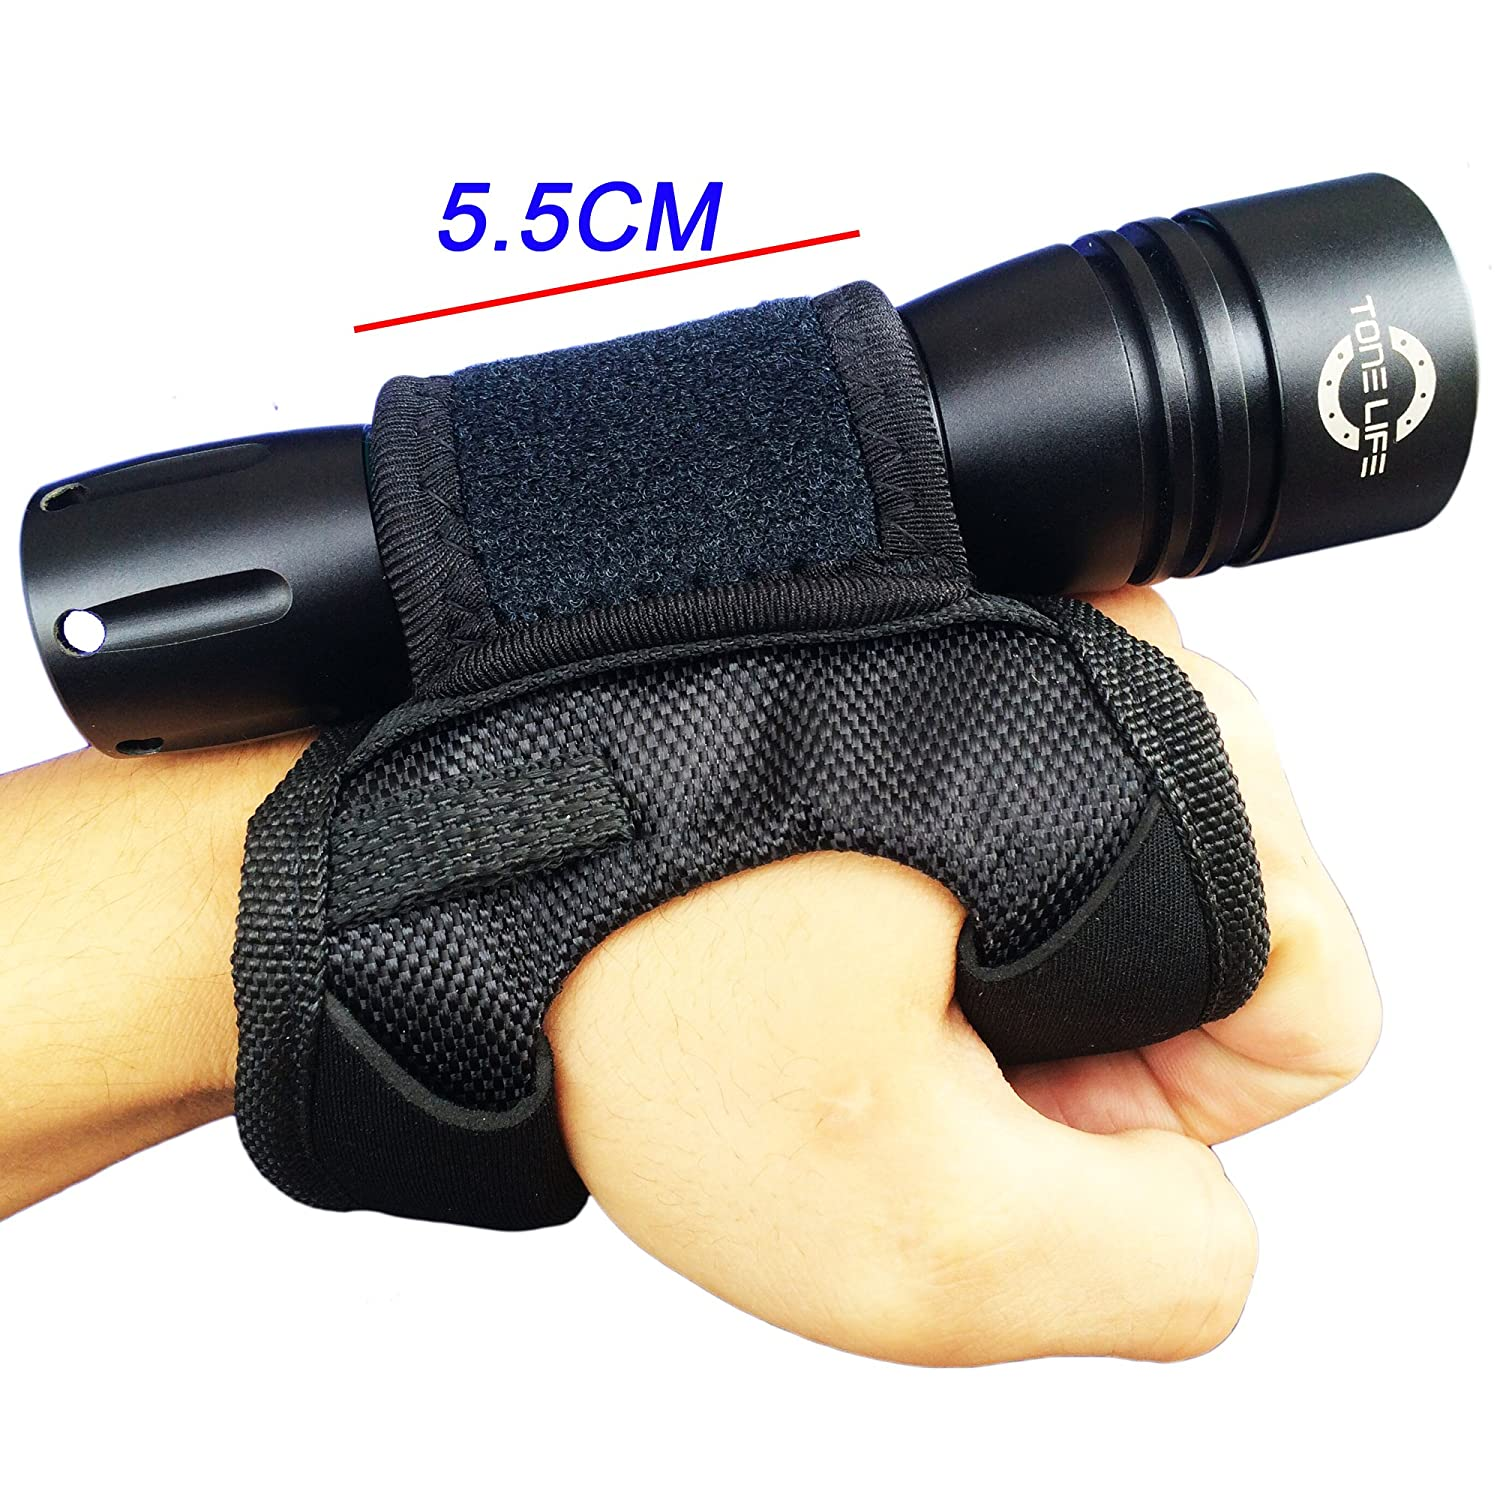 Tonelife Neoprene Goodman Style Glove 03 Universal Adjustable Hand and Arm Strap Waist Strap Soft Hand Mount for Scuba Dive Lights Led Flashlight(glove Only, no Torch)